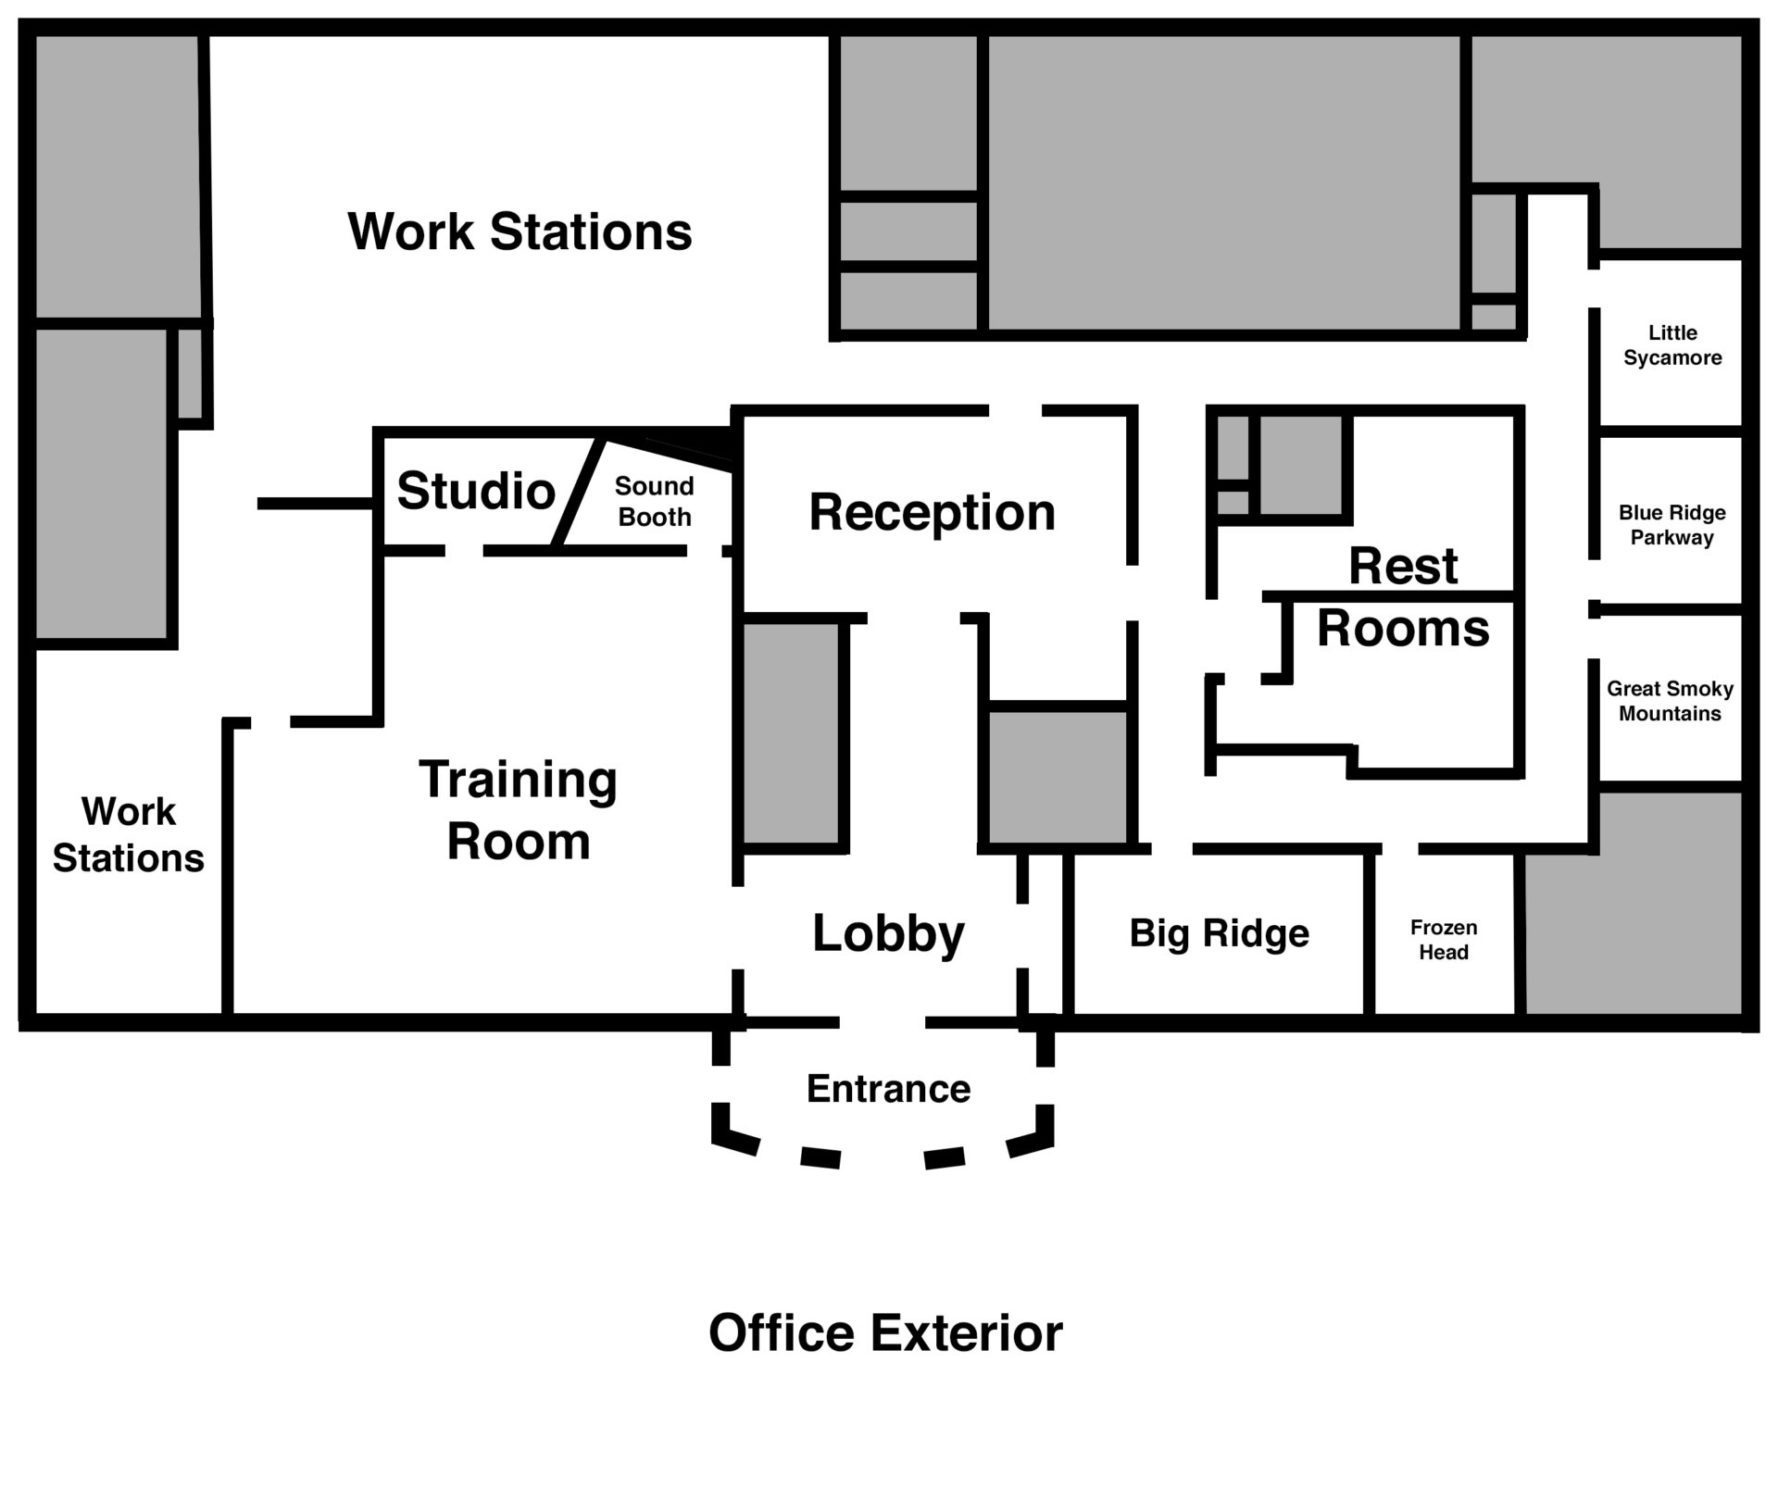 OfficeTourMap1